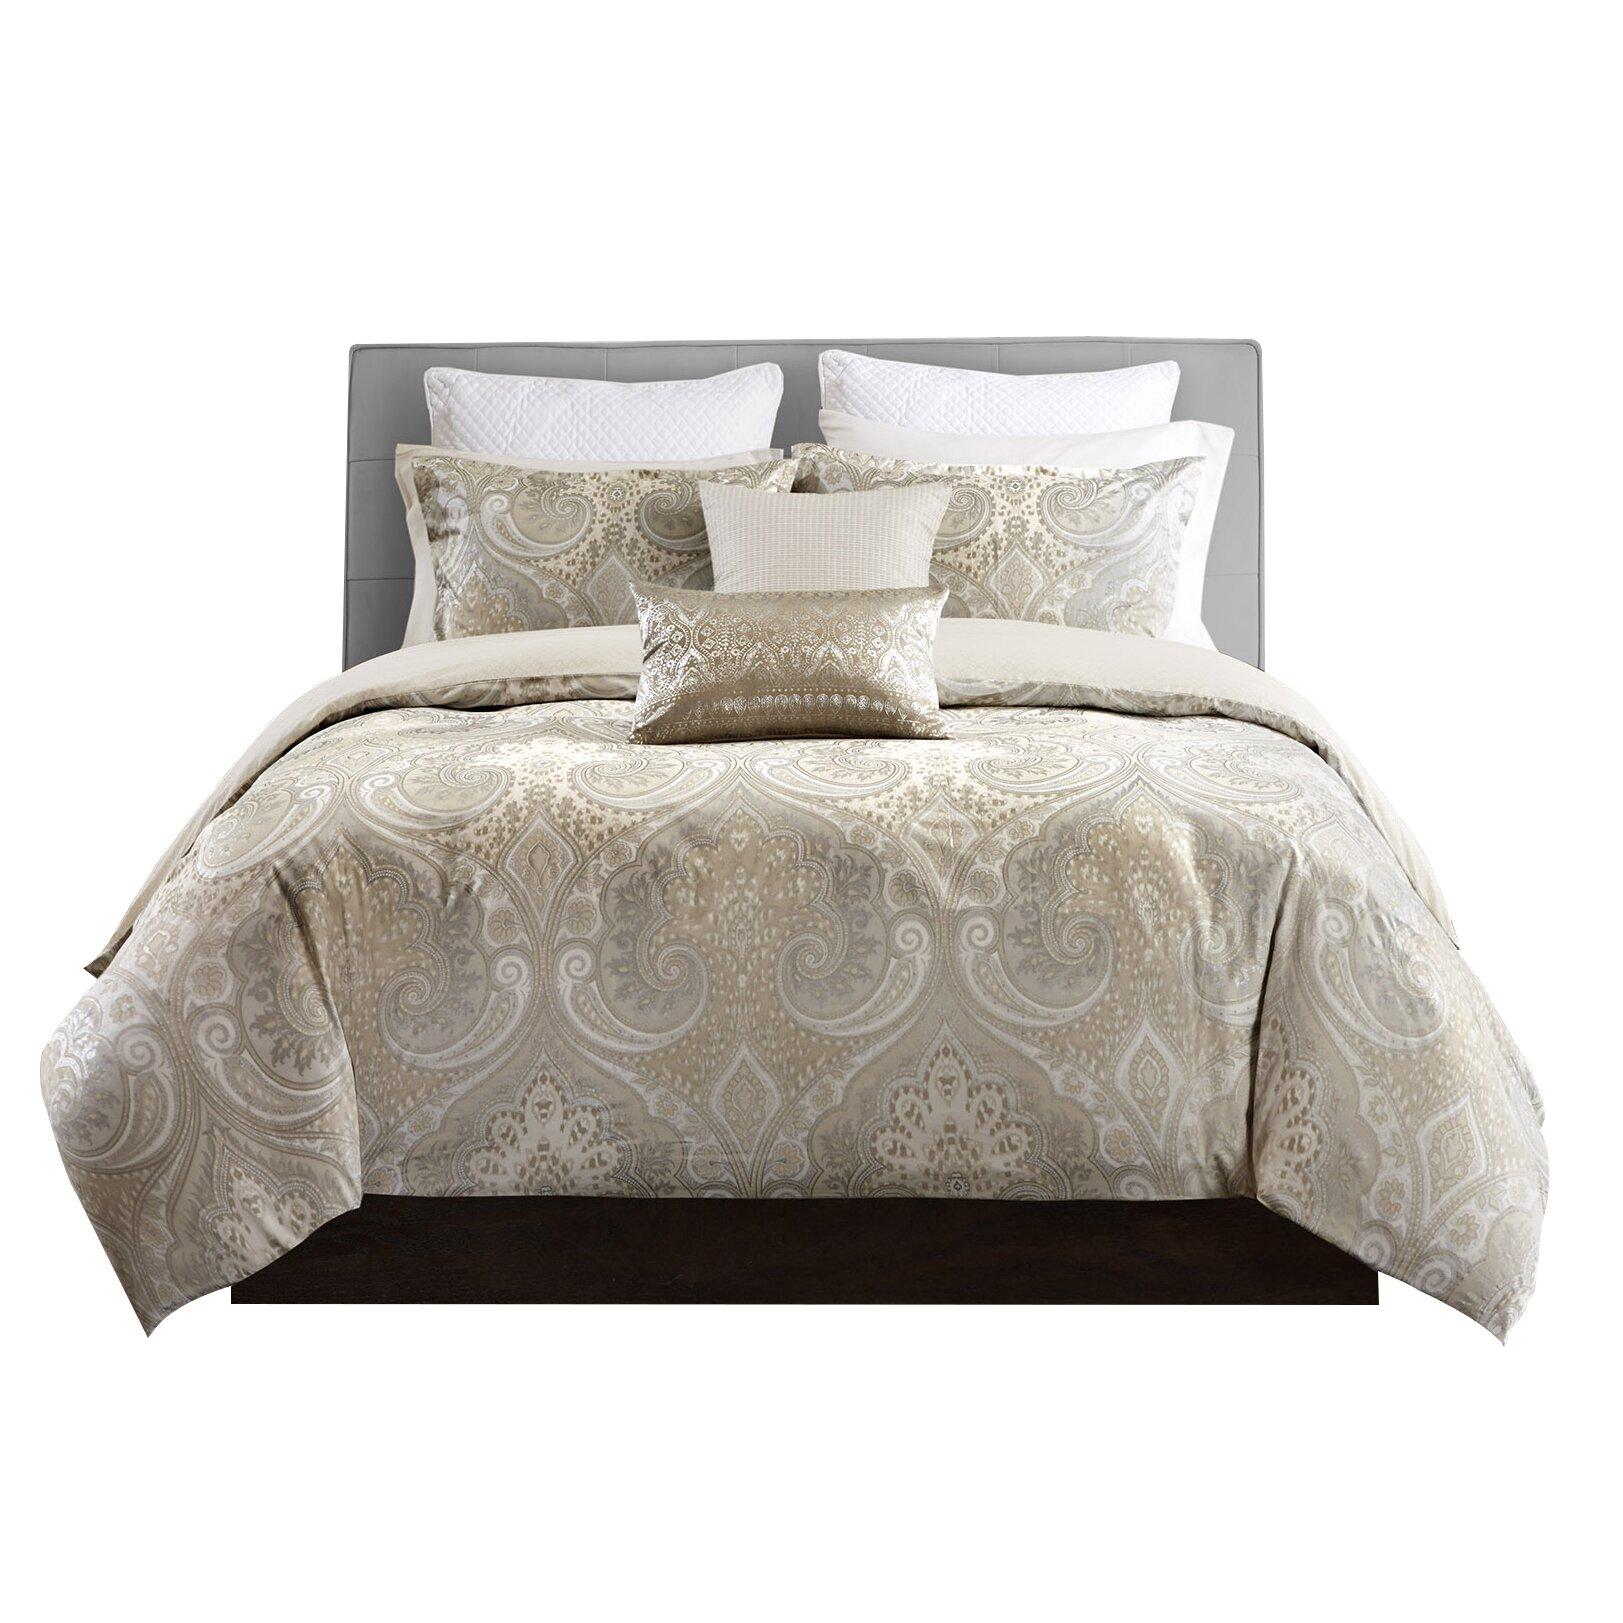 Wayfair Bedding Sets Echo Design Juneau Comforter Set